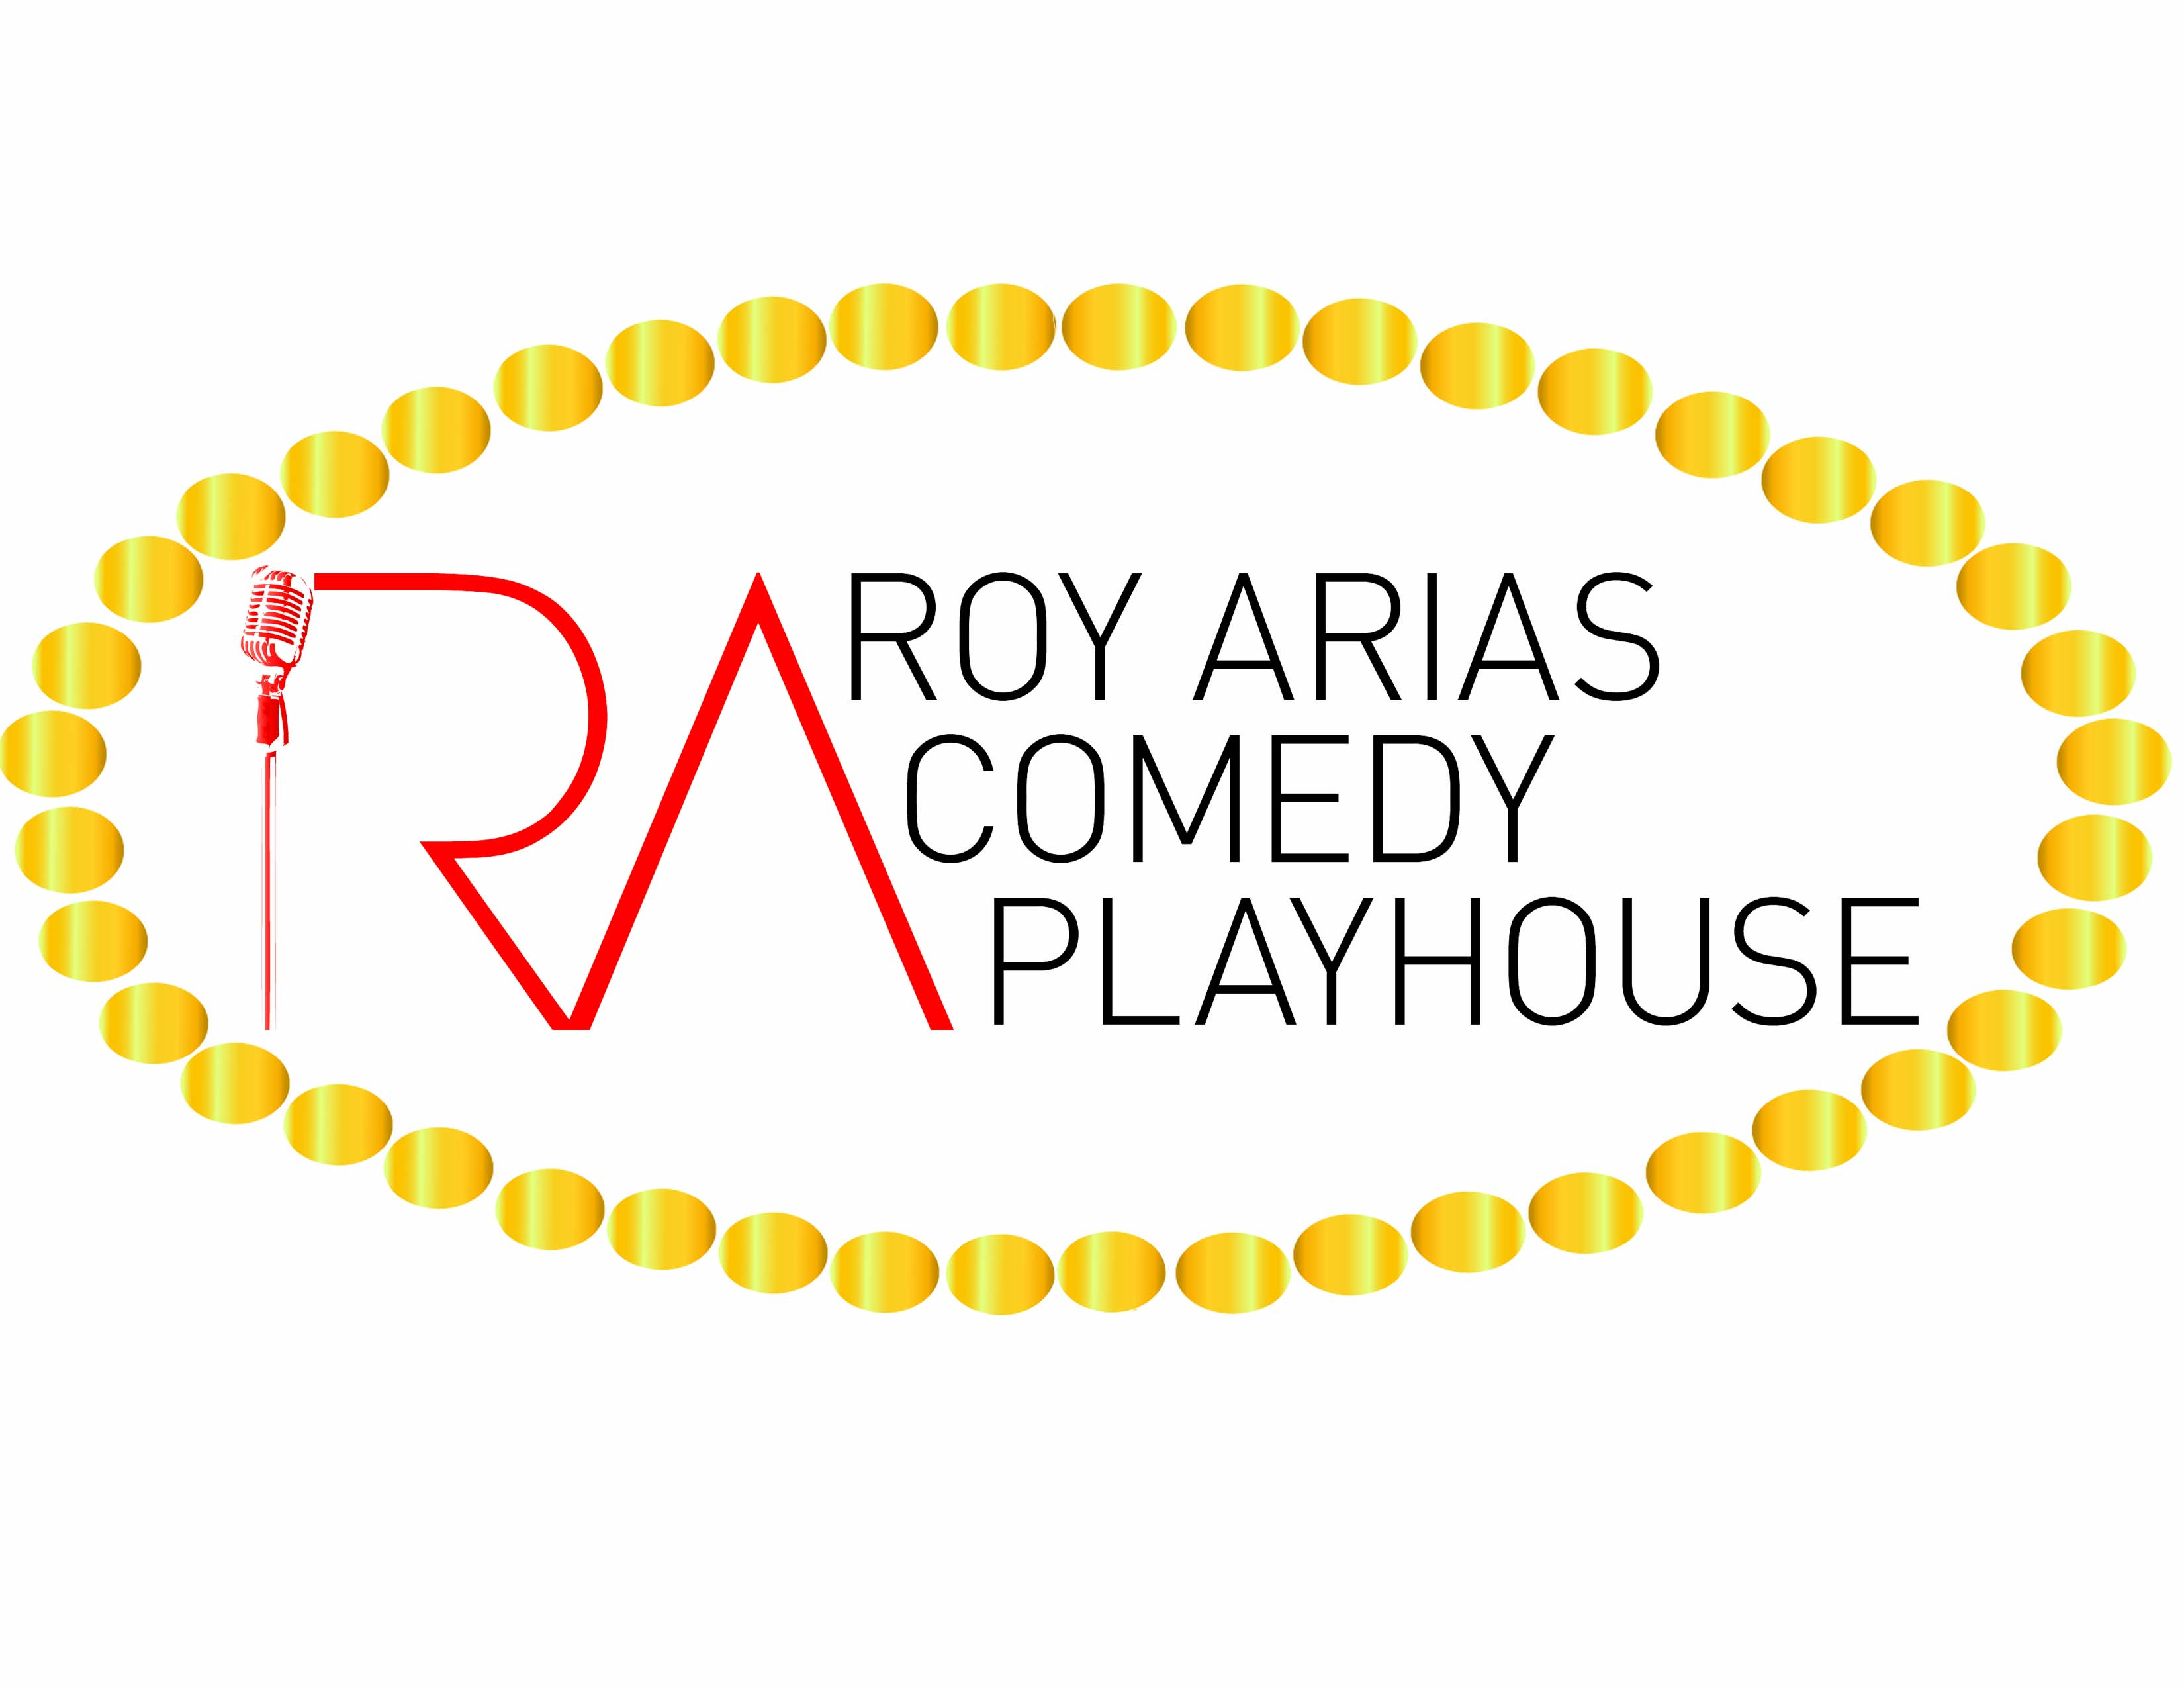 Roy Arias Comedy Playhouse at Theatre 500